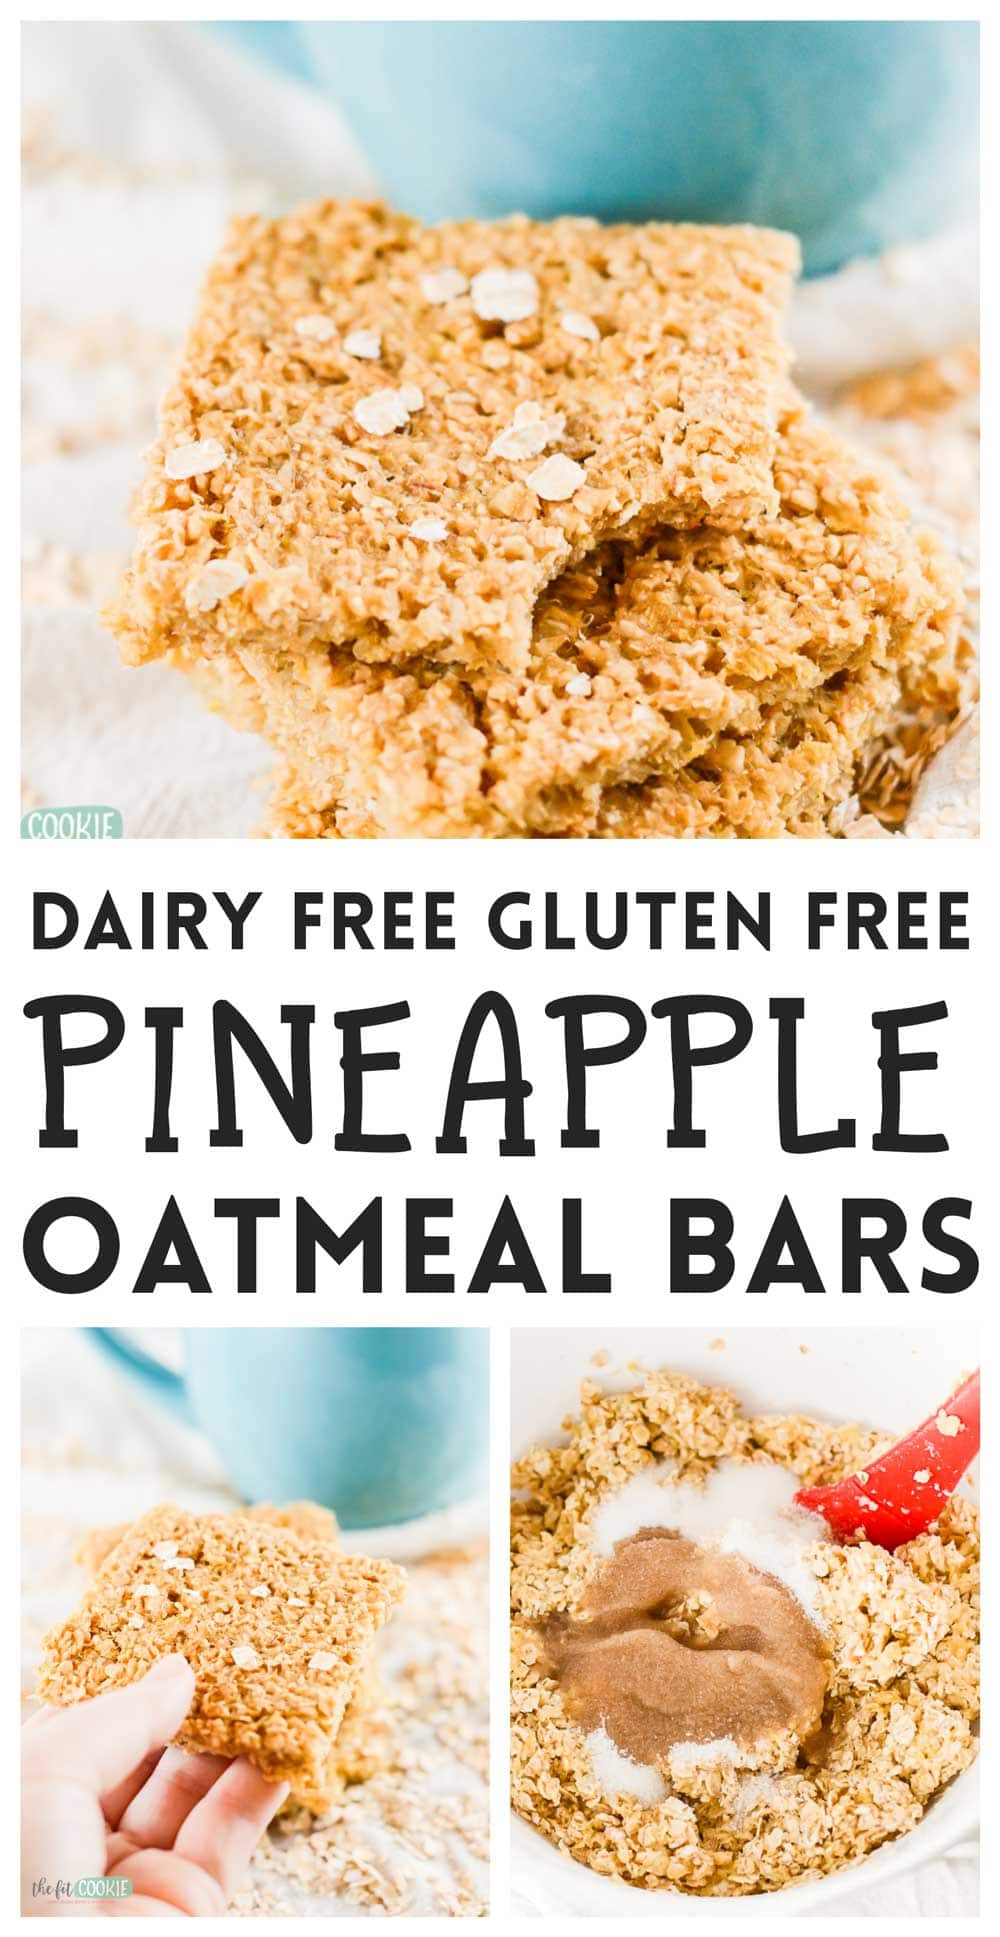 photo collage of pineapple oatmeal bars and how to make them